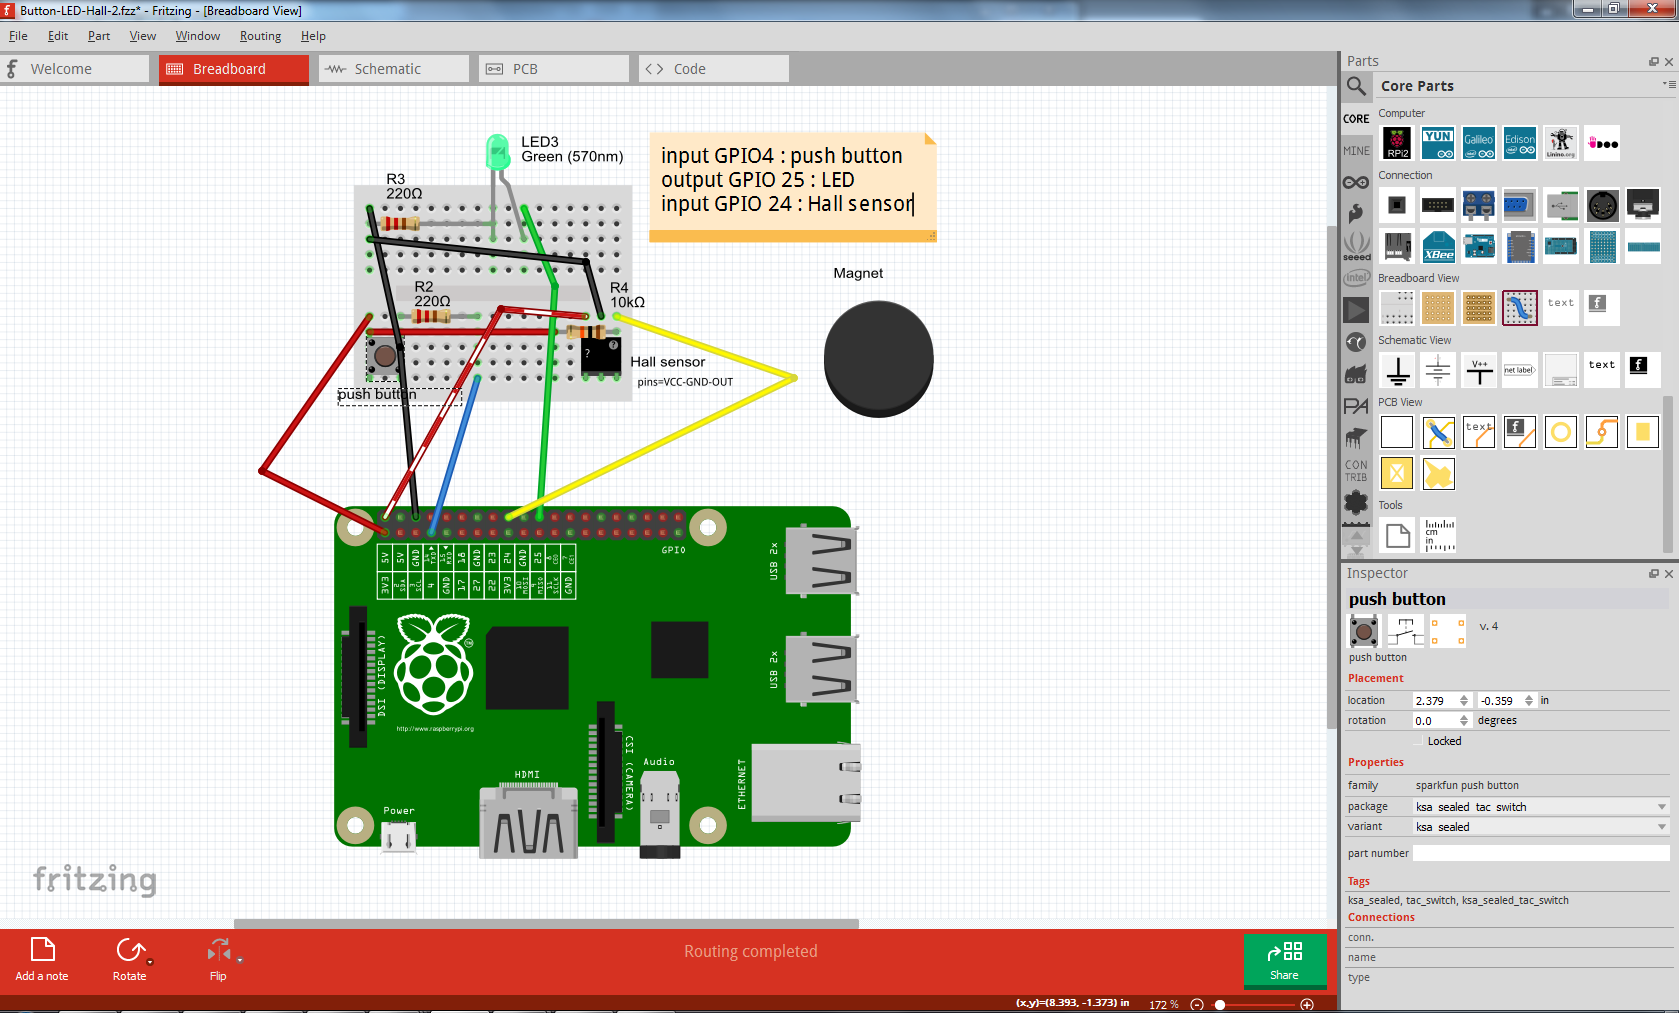 Fritzing Tool For Documenting Raspberry Pi Projects Guidance Blog Circuit Diagram Of The Project Is Shown Below Schematic View Automatically Created Updated While Working On Breadboard Side After Ready One Can Finalize Into A